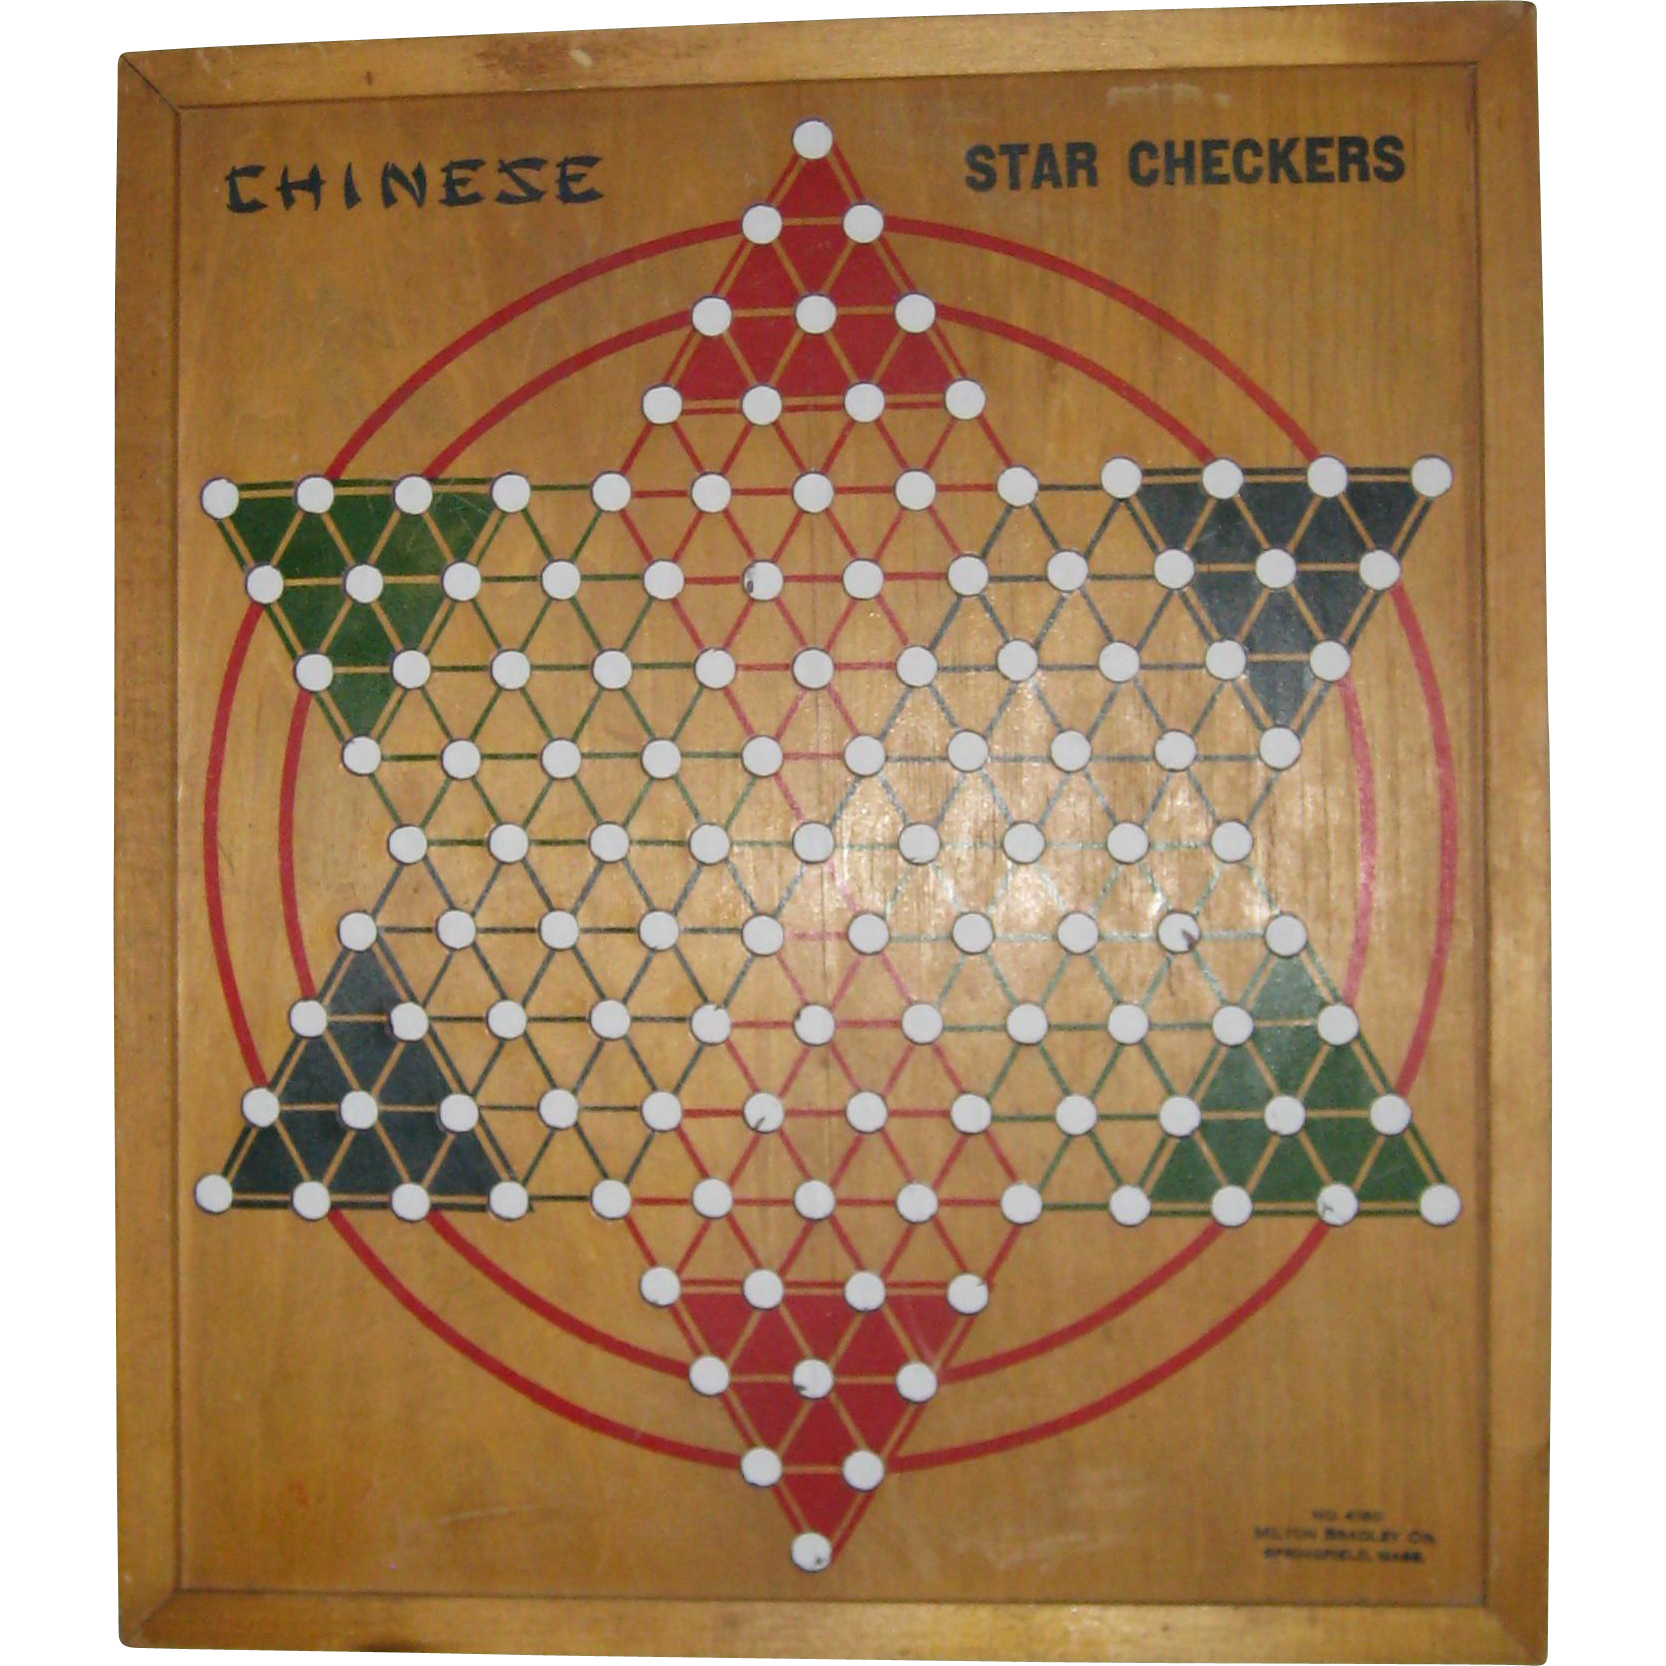 Milton Bradley Chinese Star Checkers Board